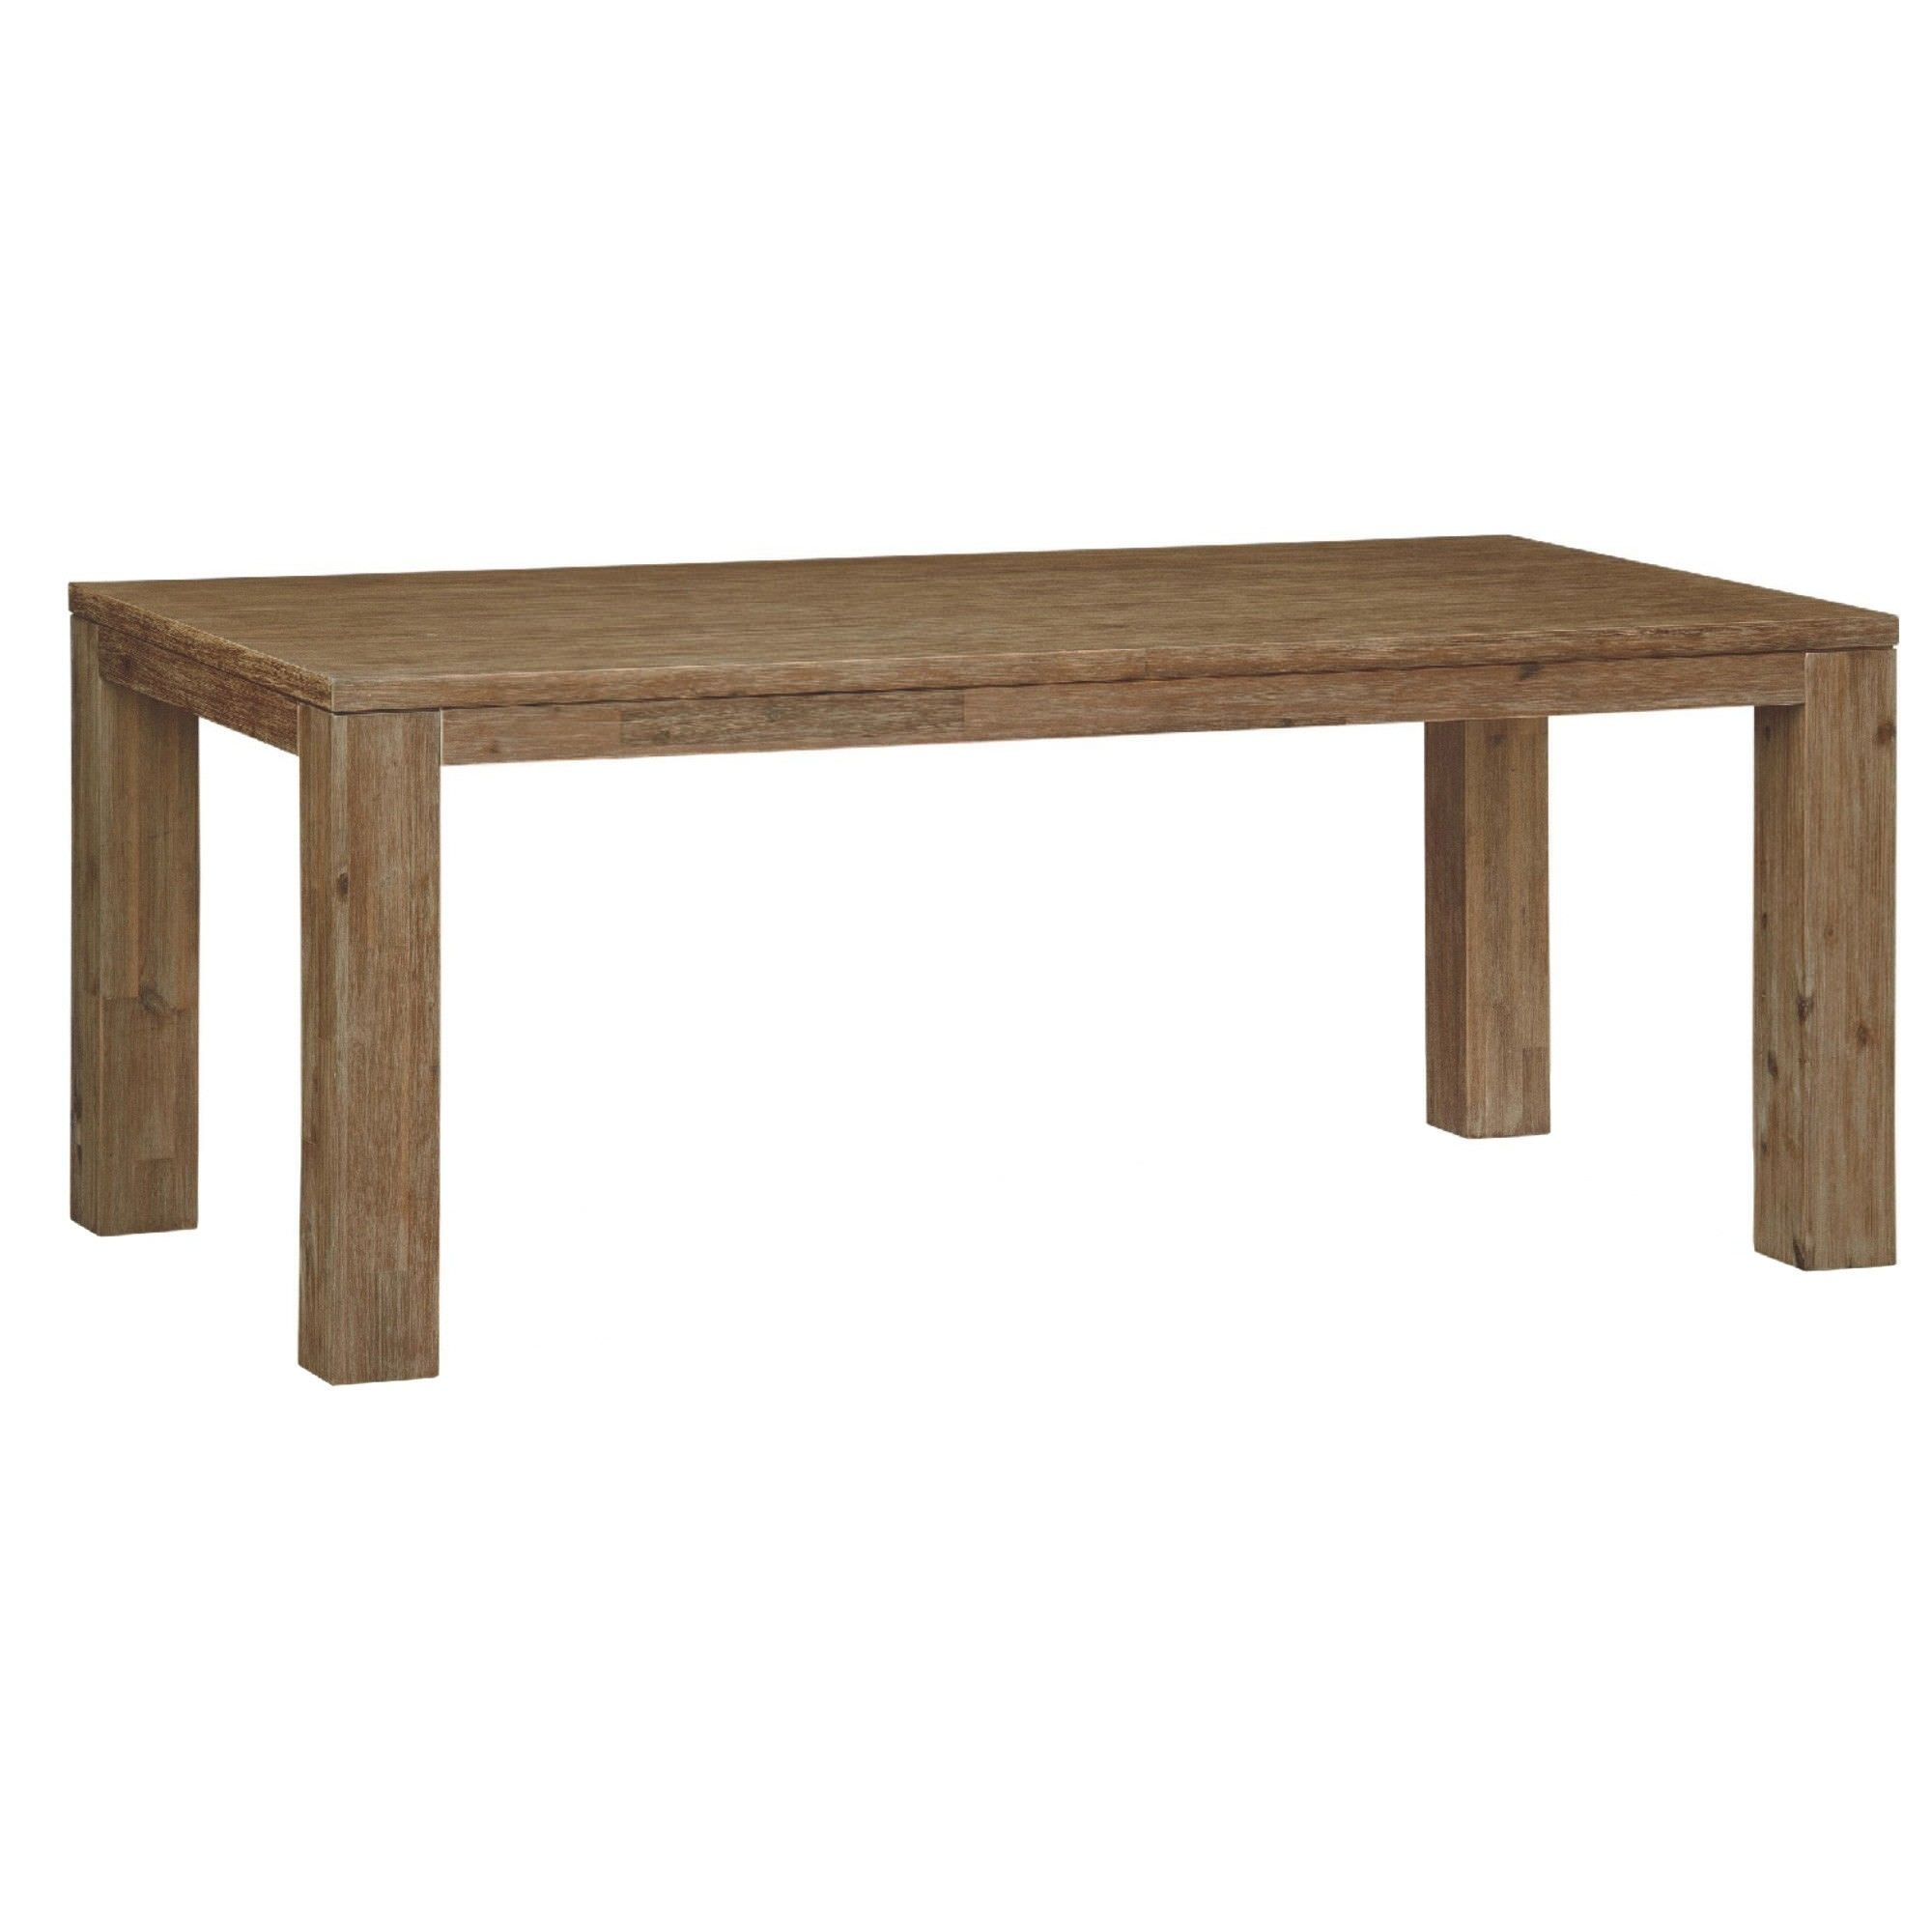 Ashton Solid Acacia Timber 220cm Dining Table